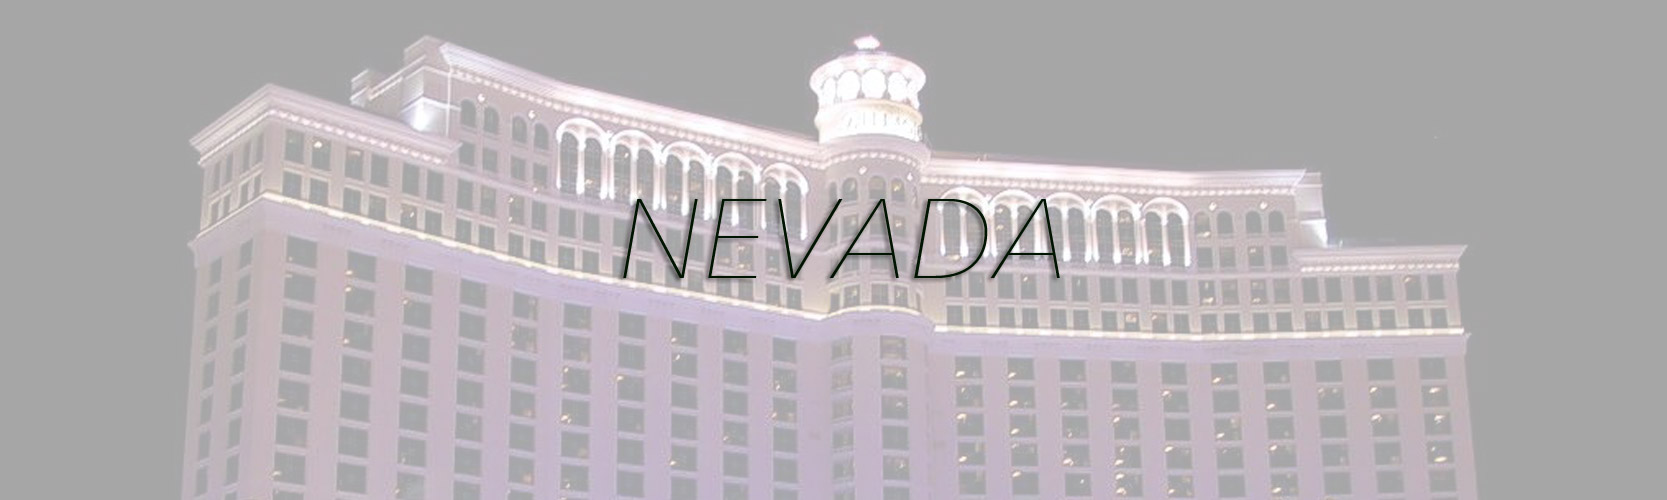 Shipping Futons, Sofa Beds, and Other Futon Shop products to Nevada